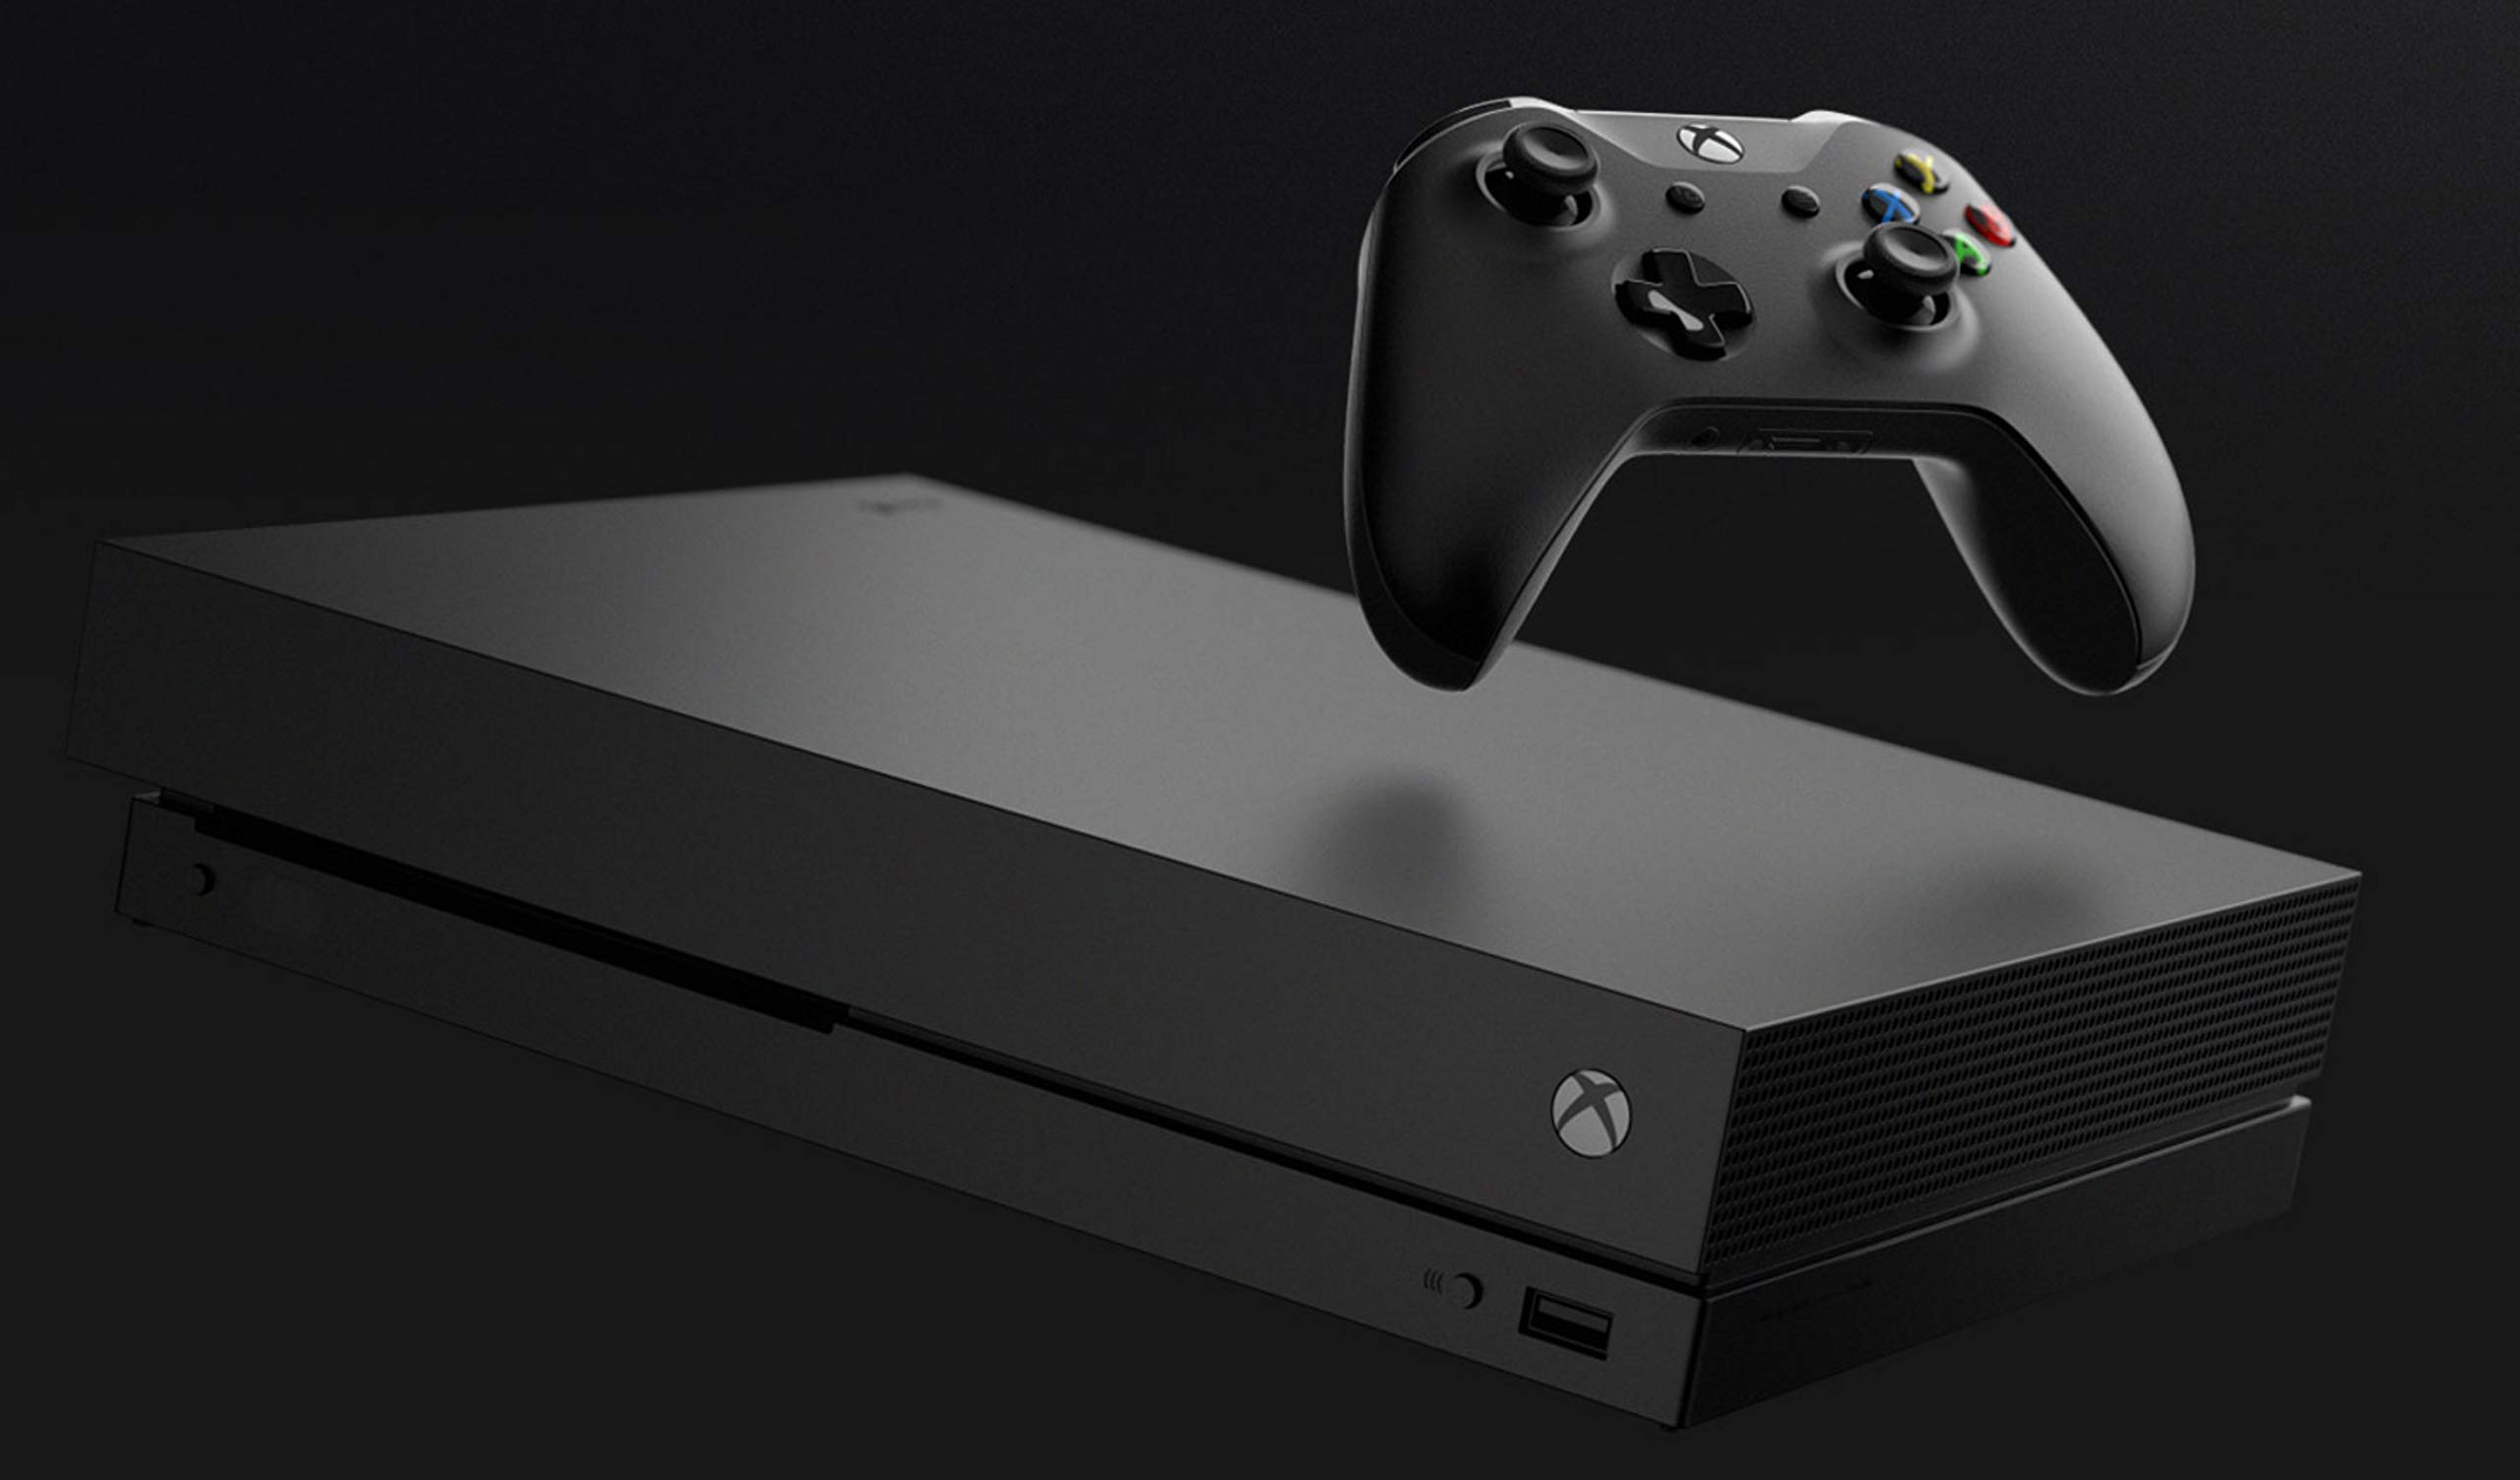 Microsoft Xbox One X 1TB Console with Wireless Controller: Xbox One X Enhanced, HDR, Native 4K, Ultra HD by Microsoft (Image #2)